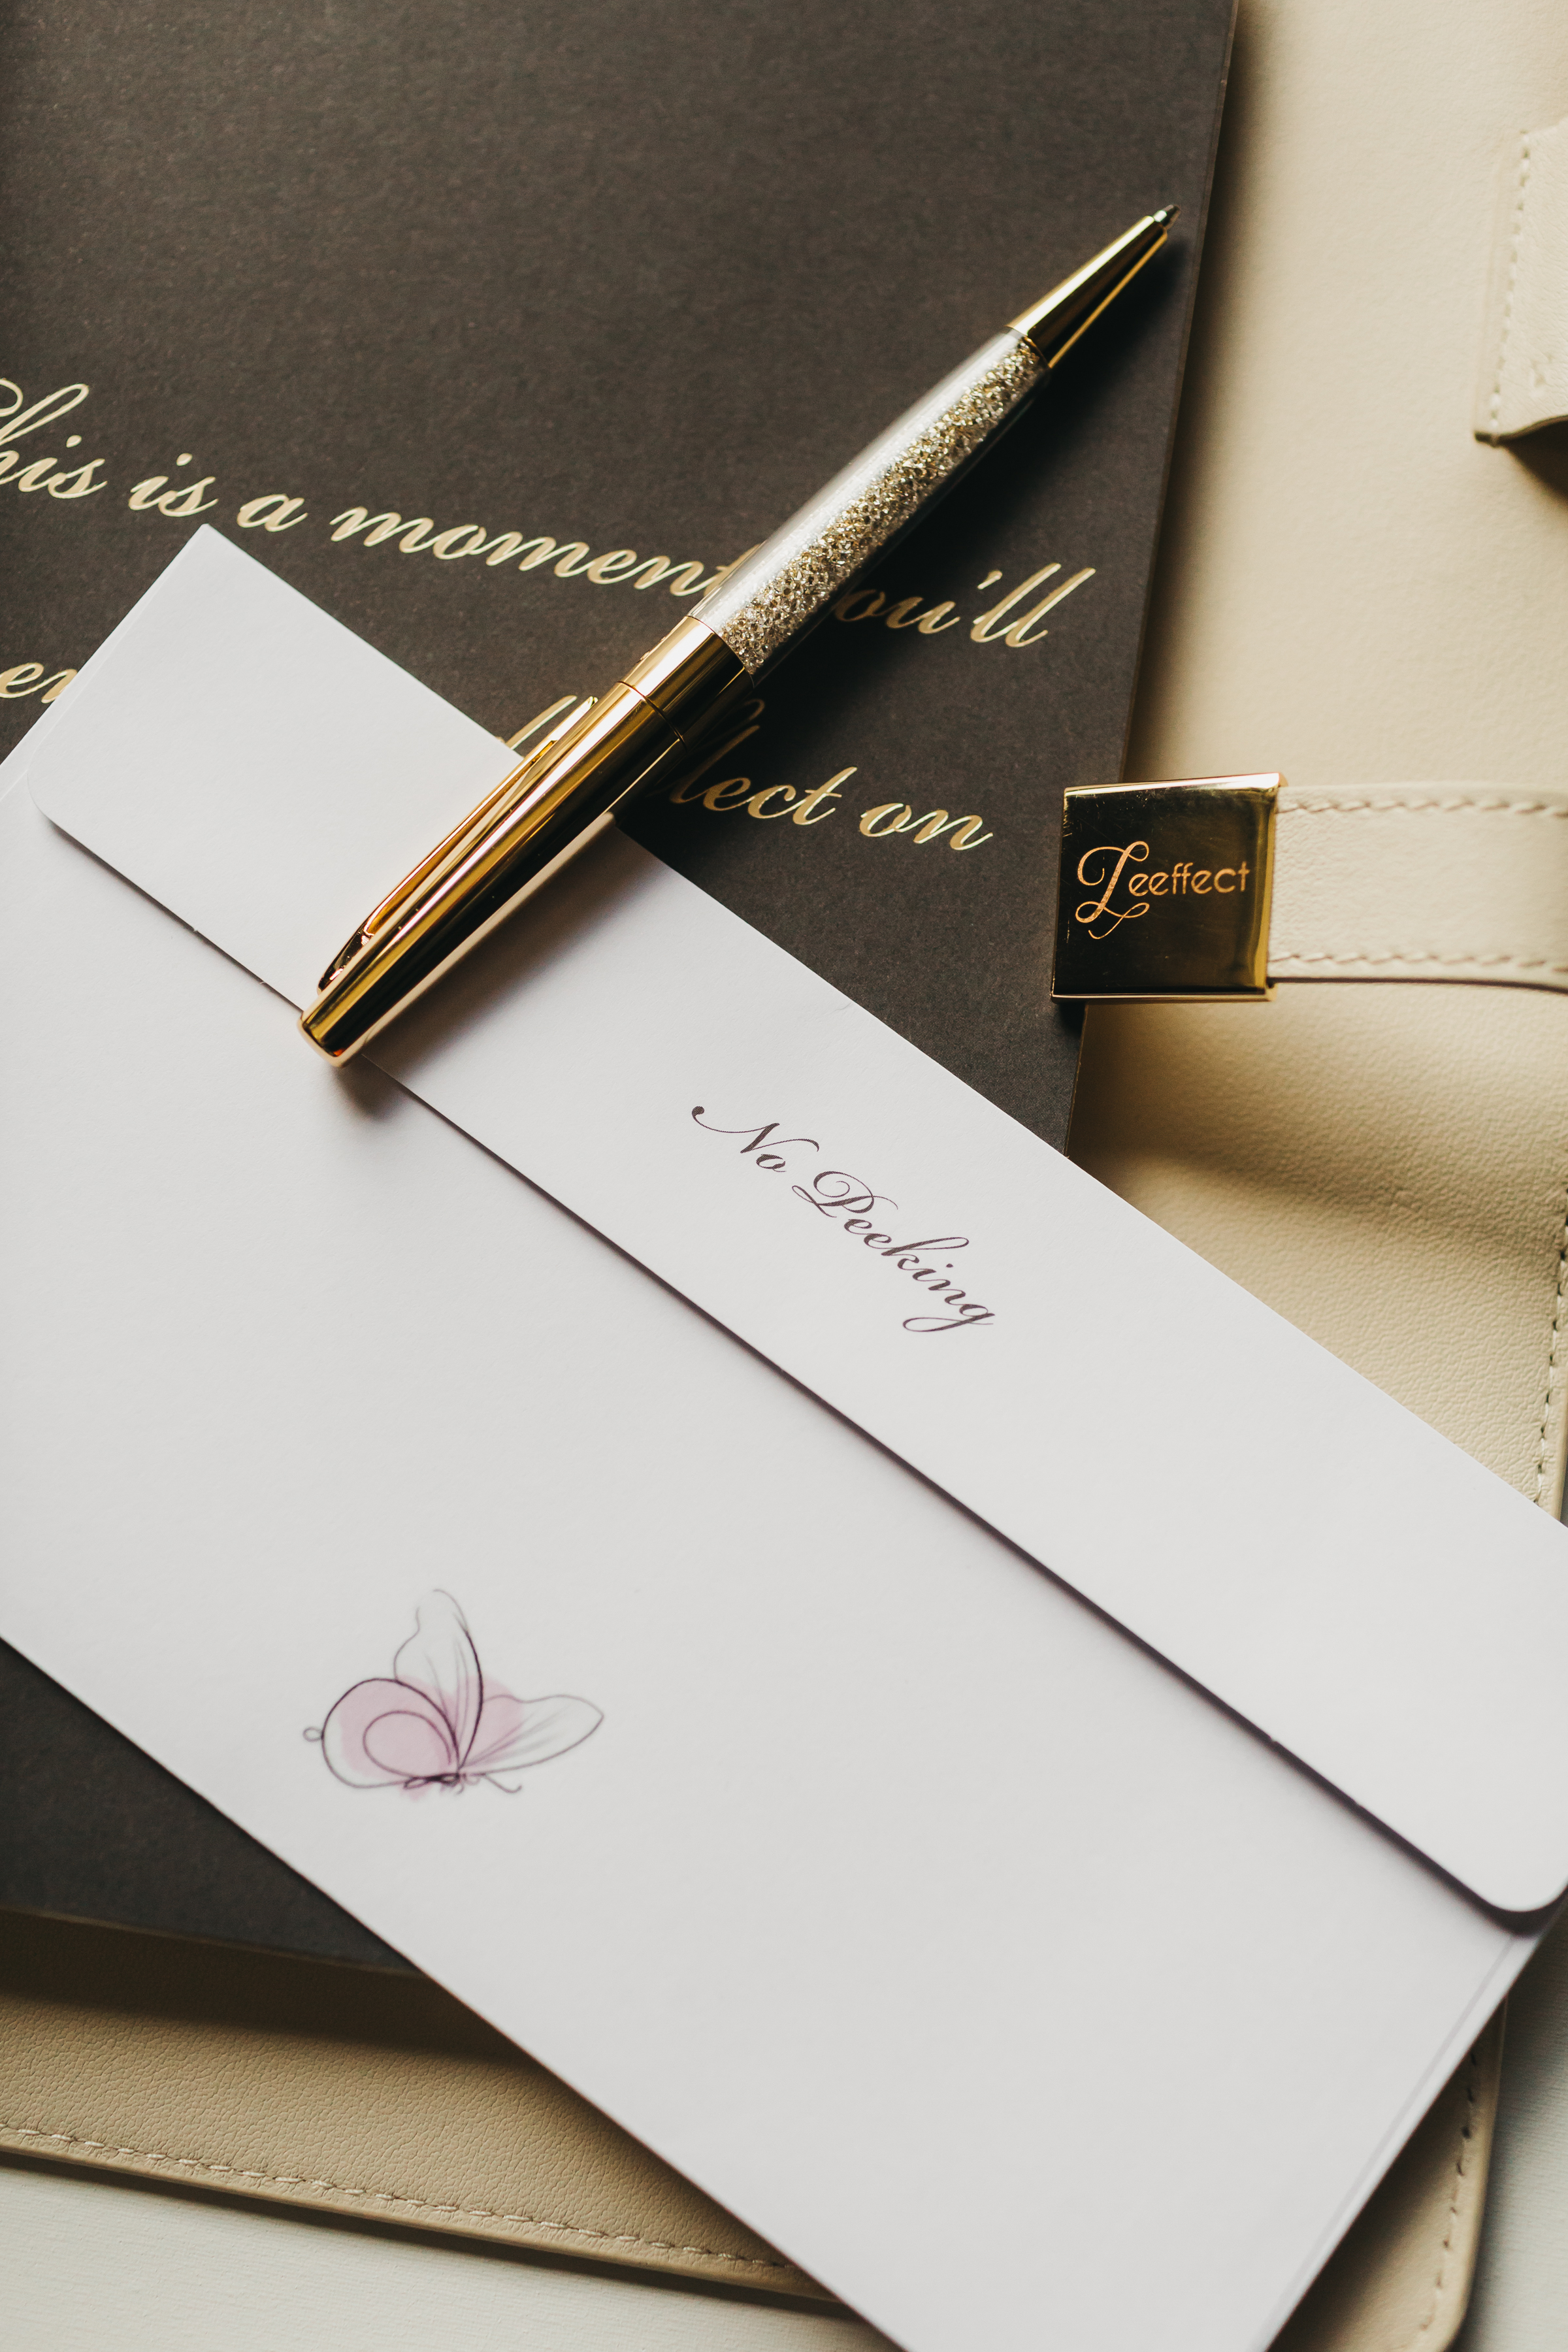 WORDS THAT LAST A LIFE TIME… - THE VOWSYour vows allow you to openly and honestly express your love and commitment to each other. They also open the door for you to explore everything you believe in as a couple.